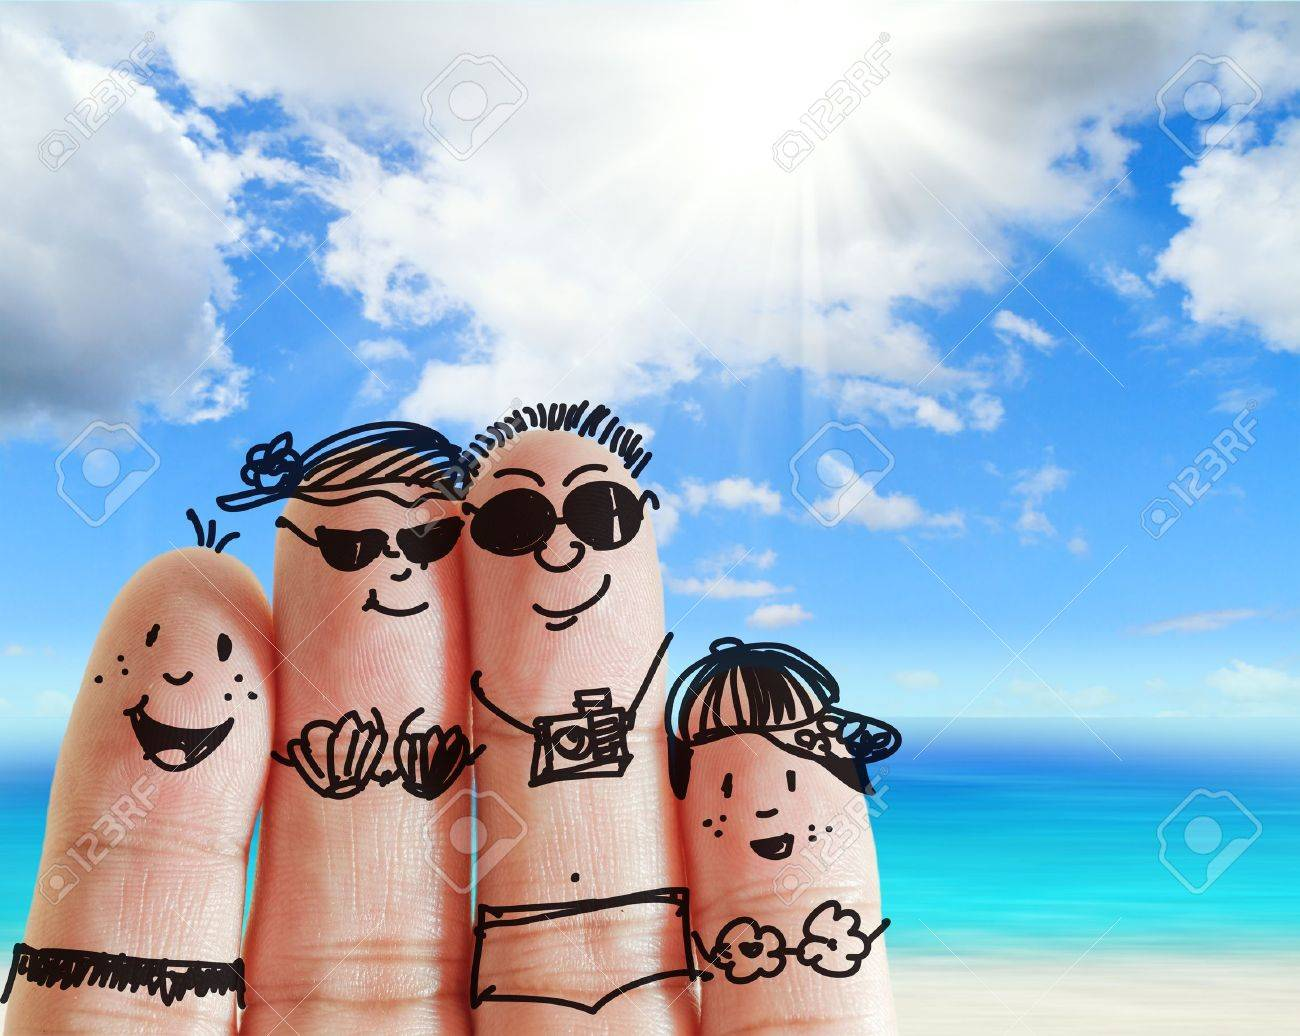 finger family travels at the beach as concept - 13422090